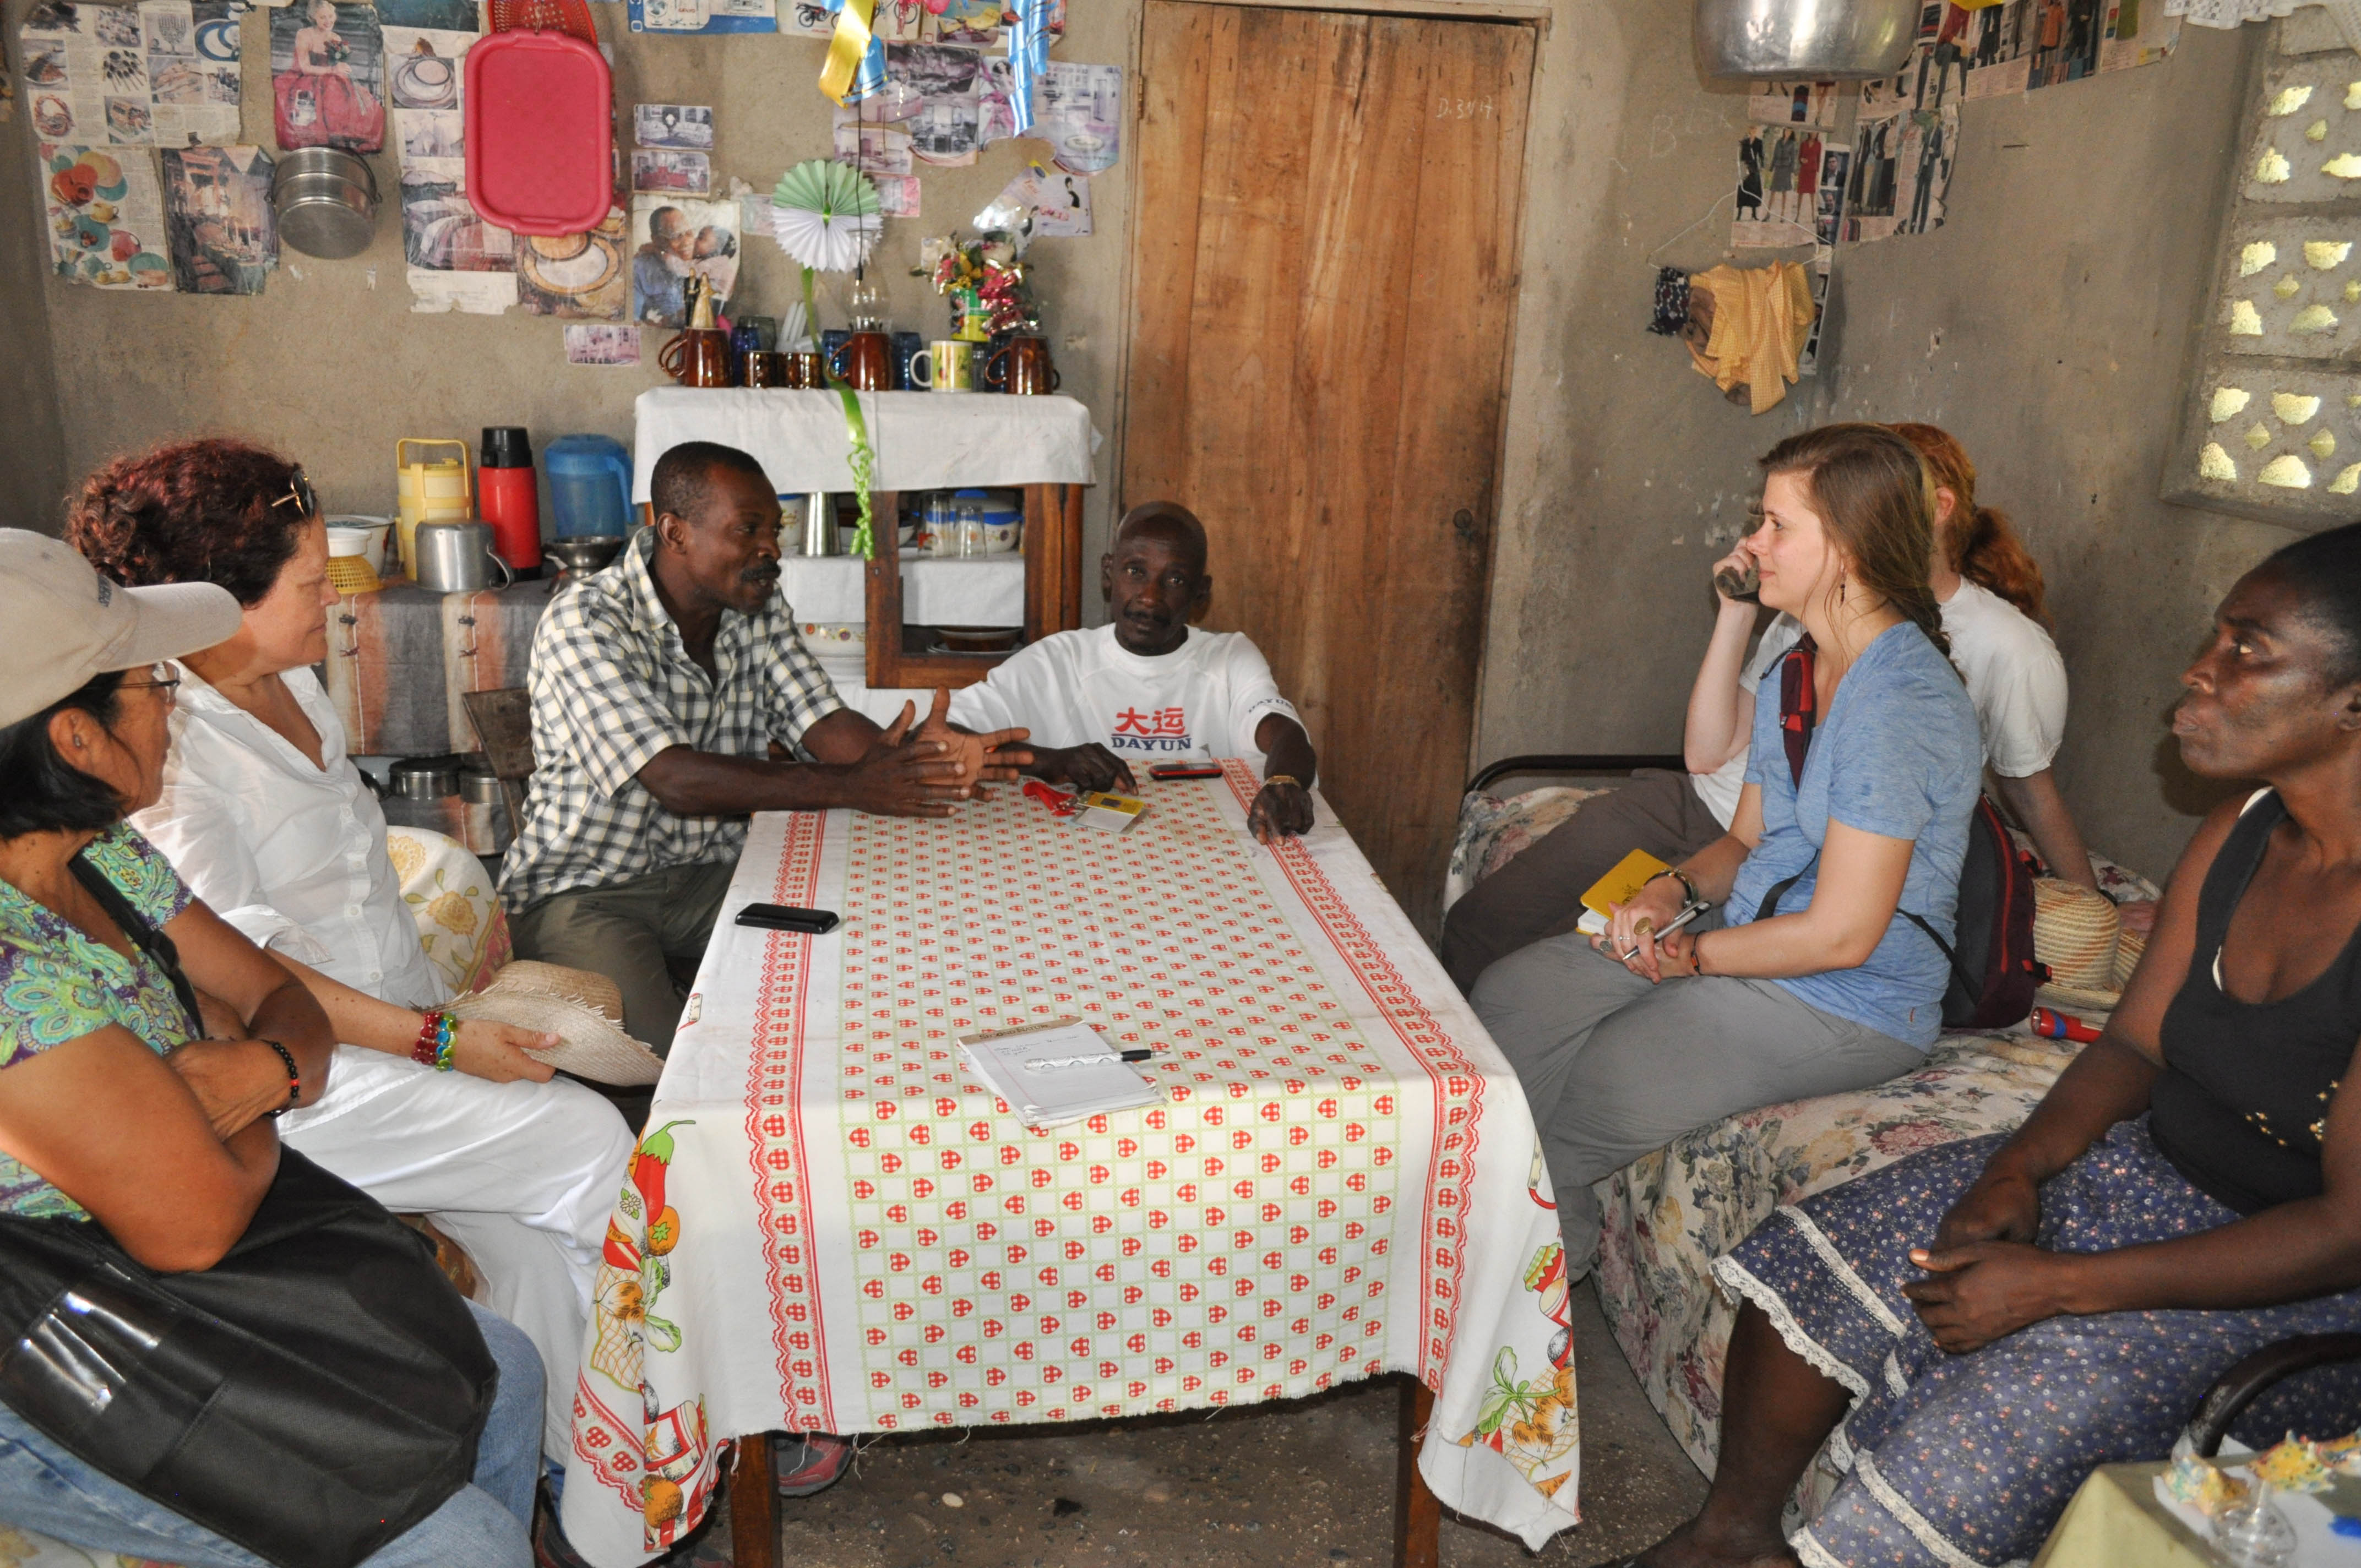 LSU, Southern U. group explores opportunities in Haiti